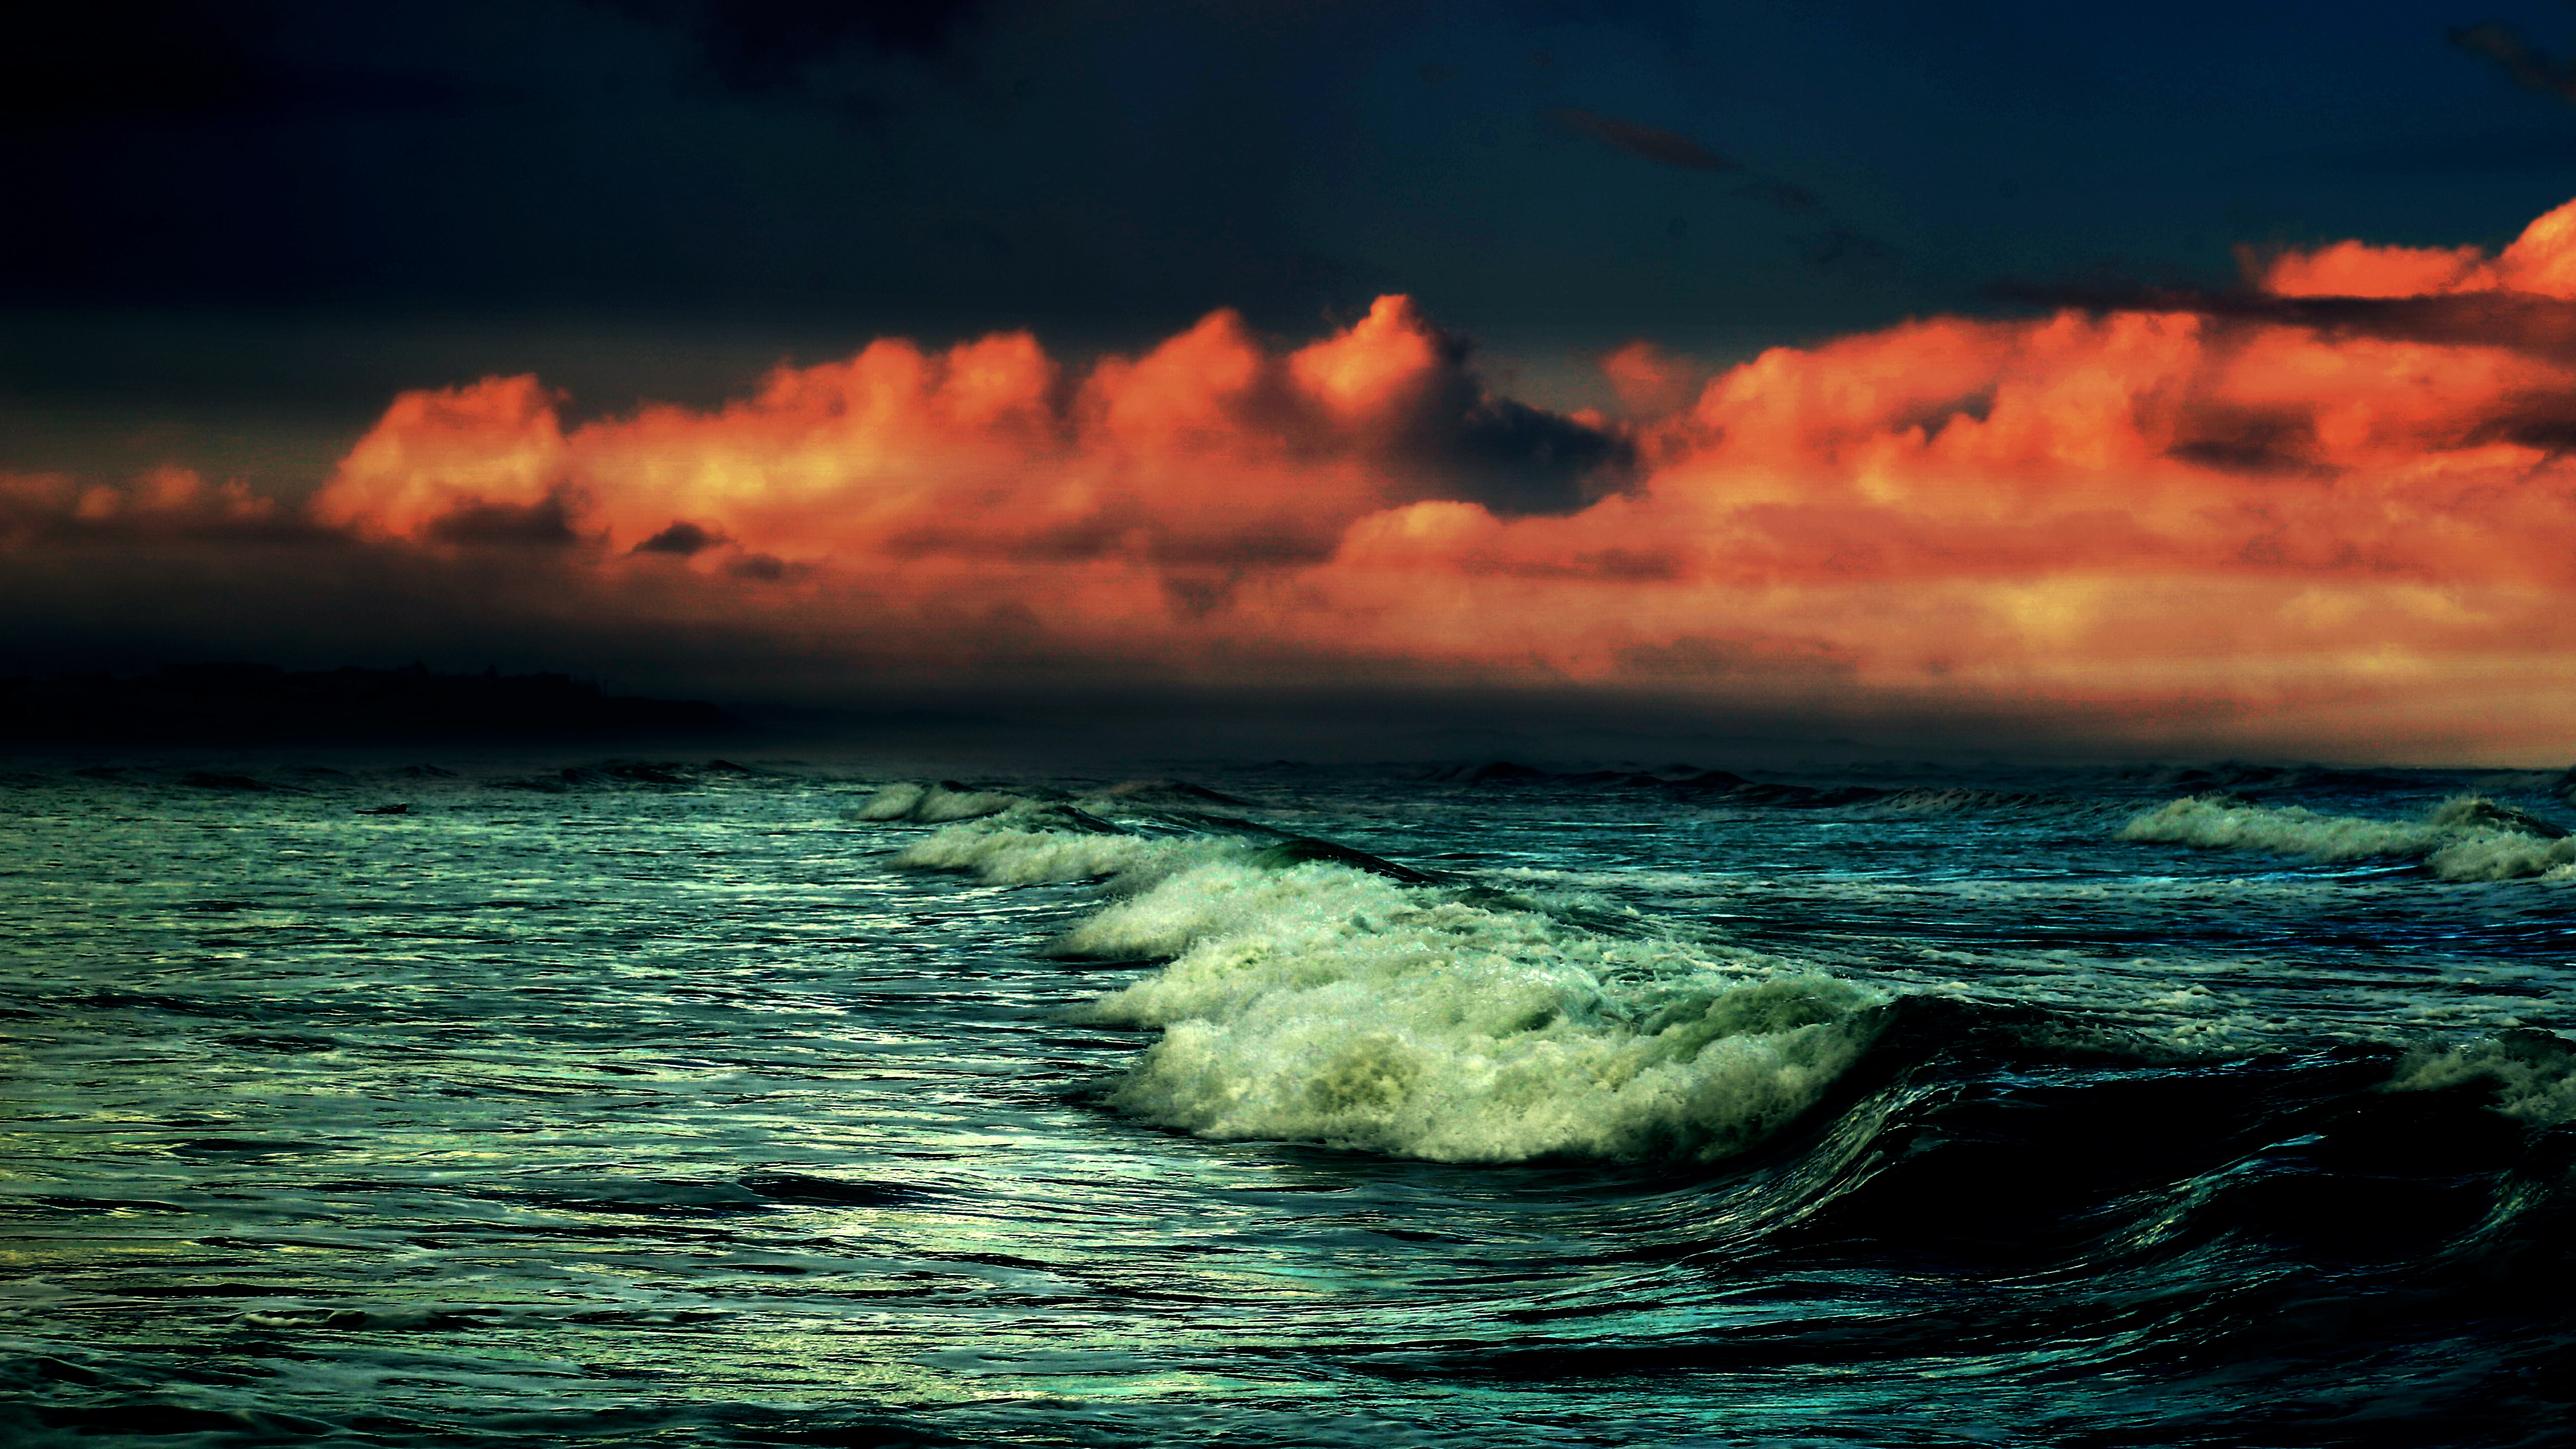 A dramatic shot of dark crashing waves under a red cloudy sky